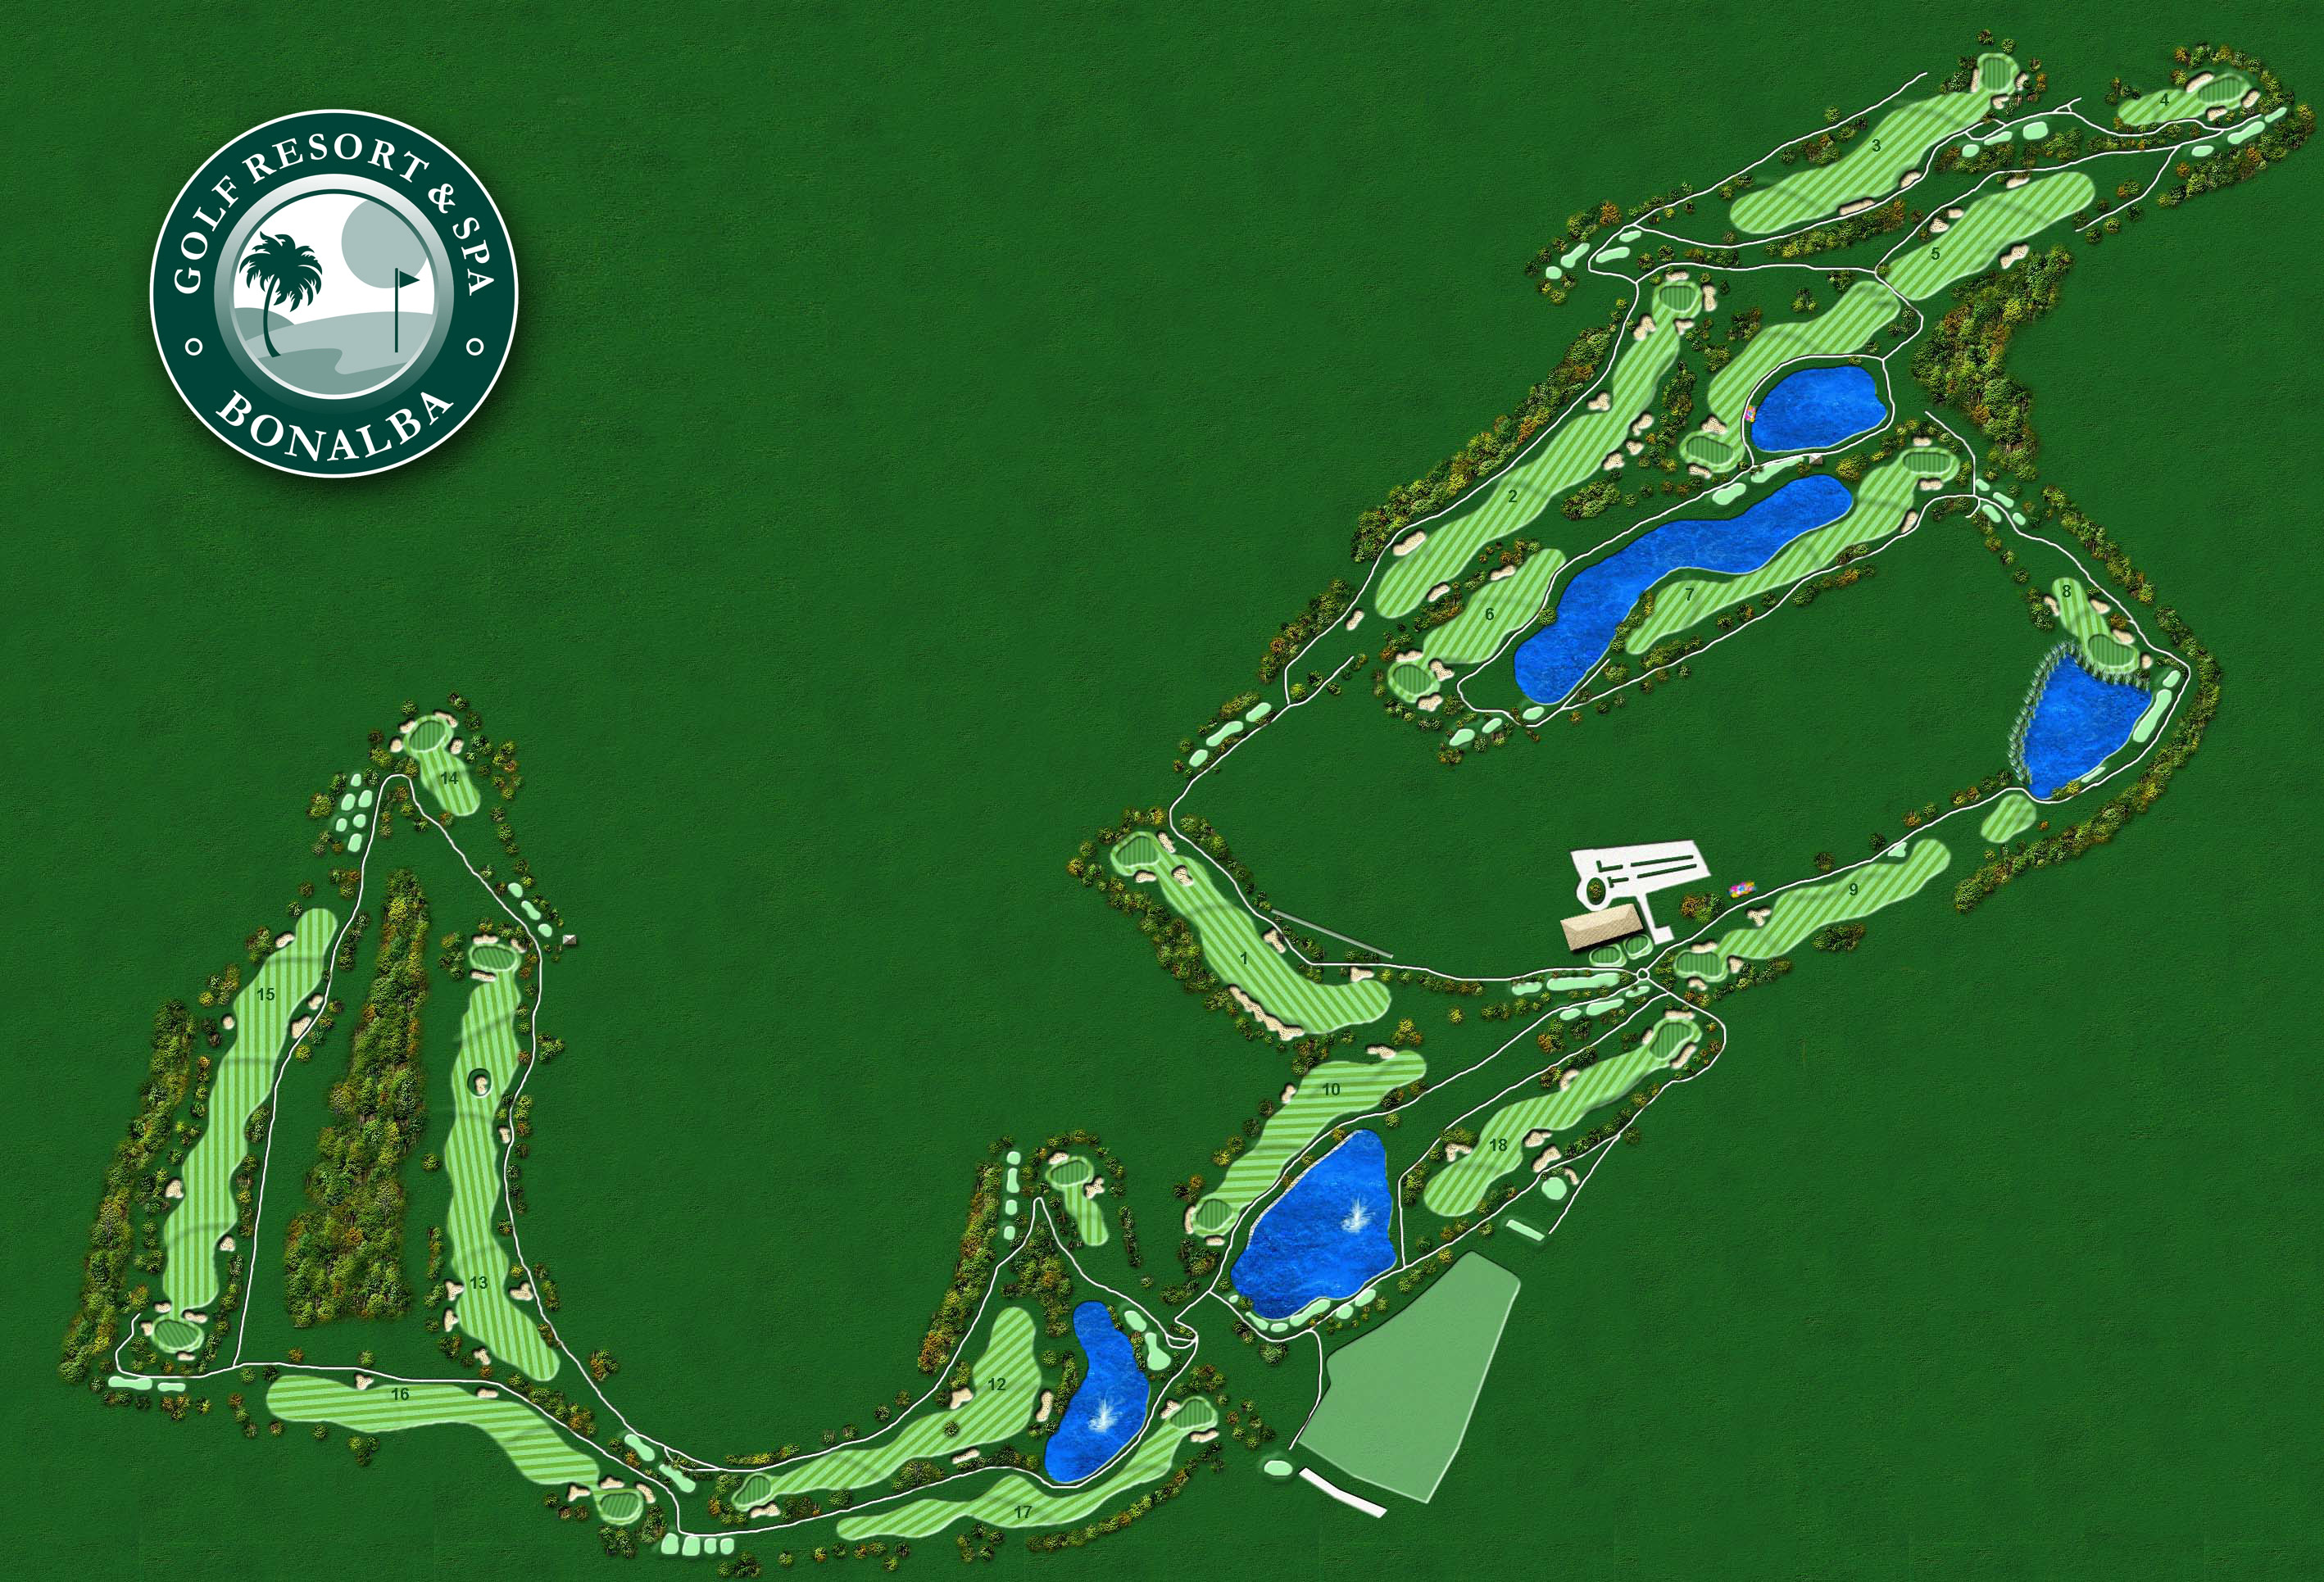 Bonalba golf map